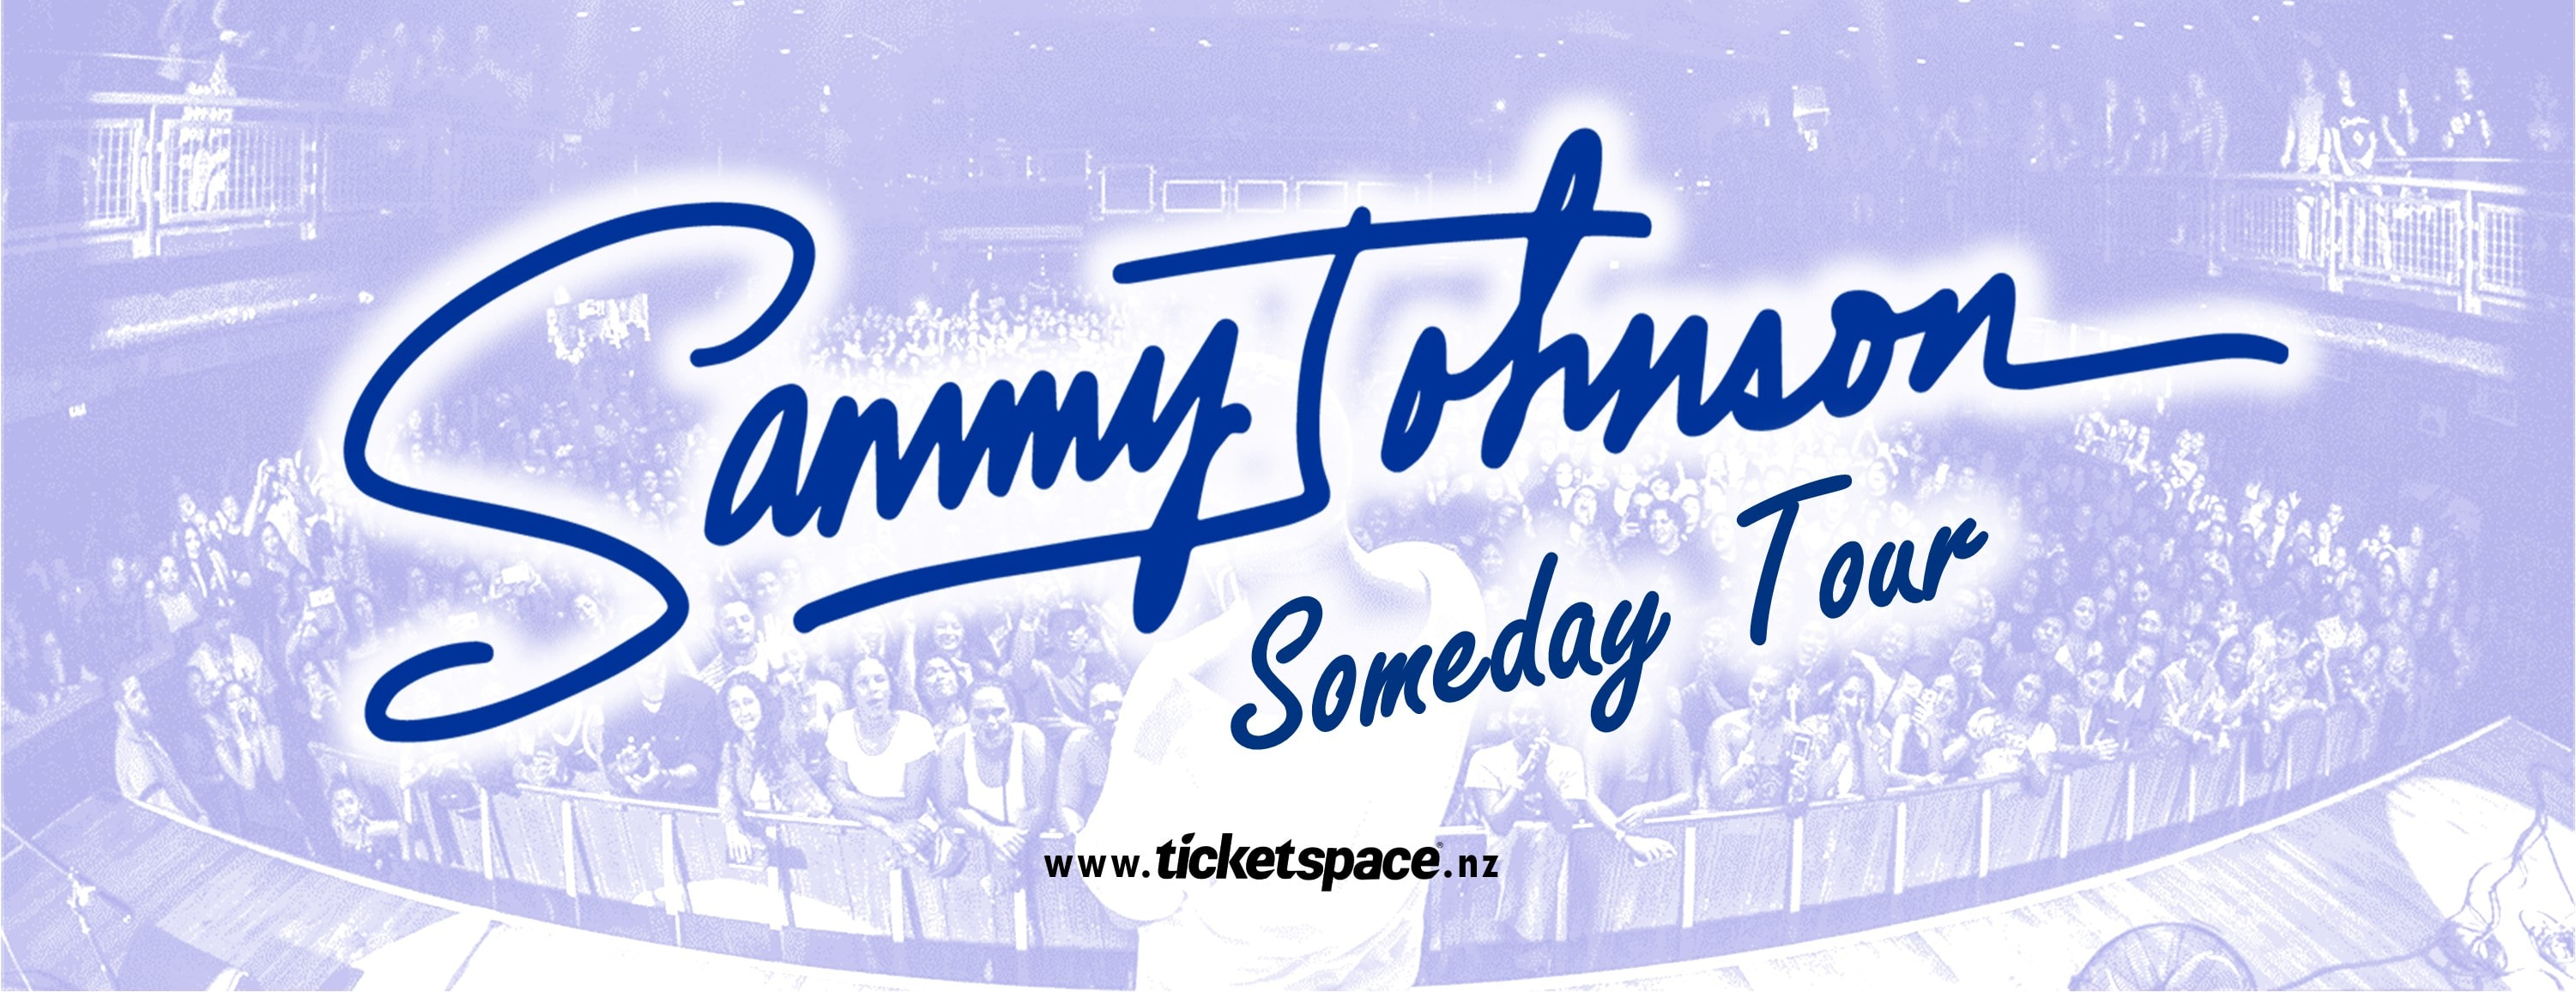 Tickets for SAMMY J 'Someday Tour' - Ruakaka in Ruakaka from Ticketspace